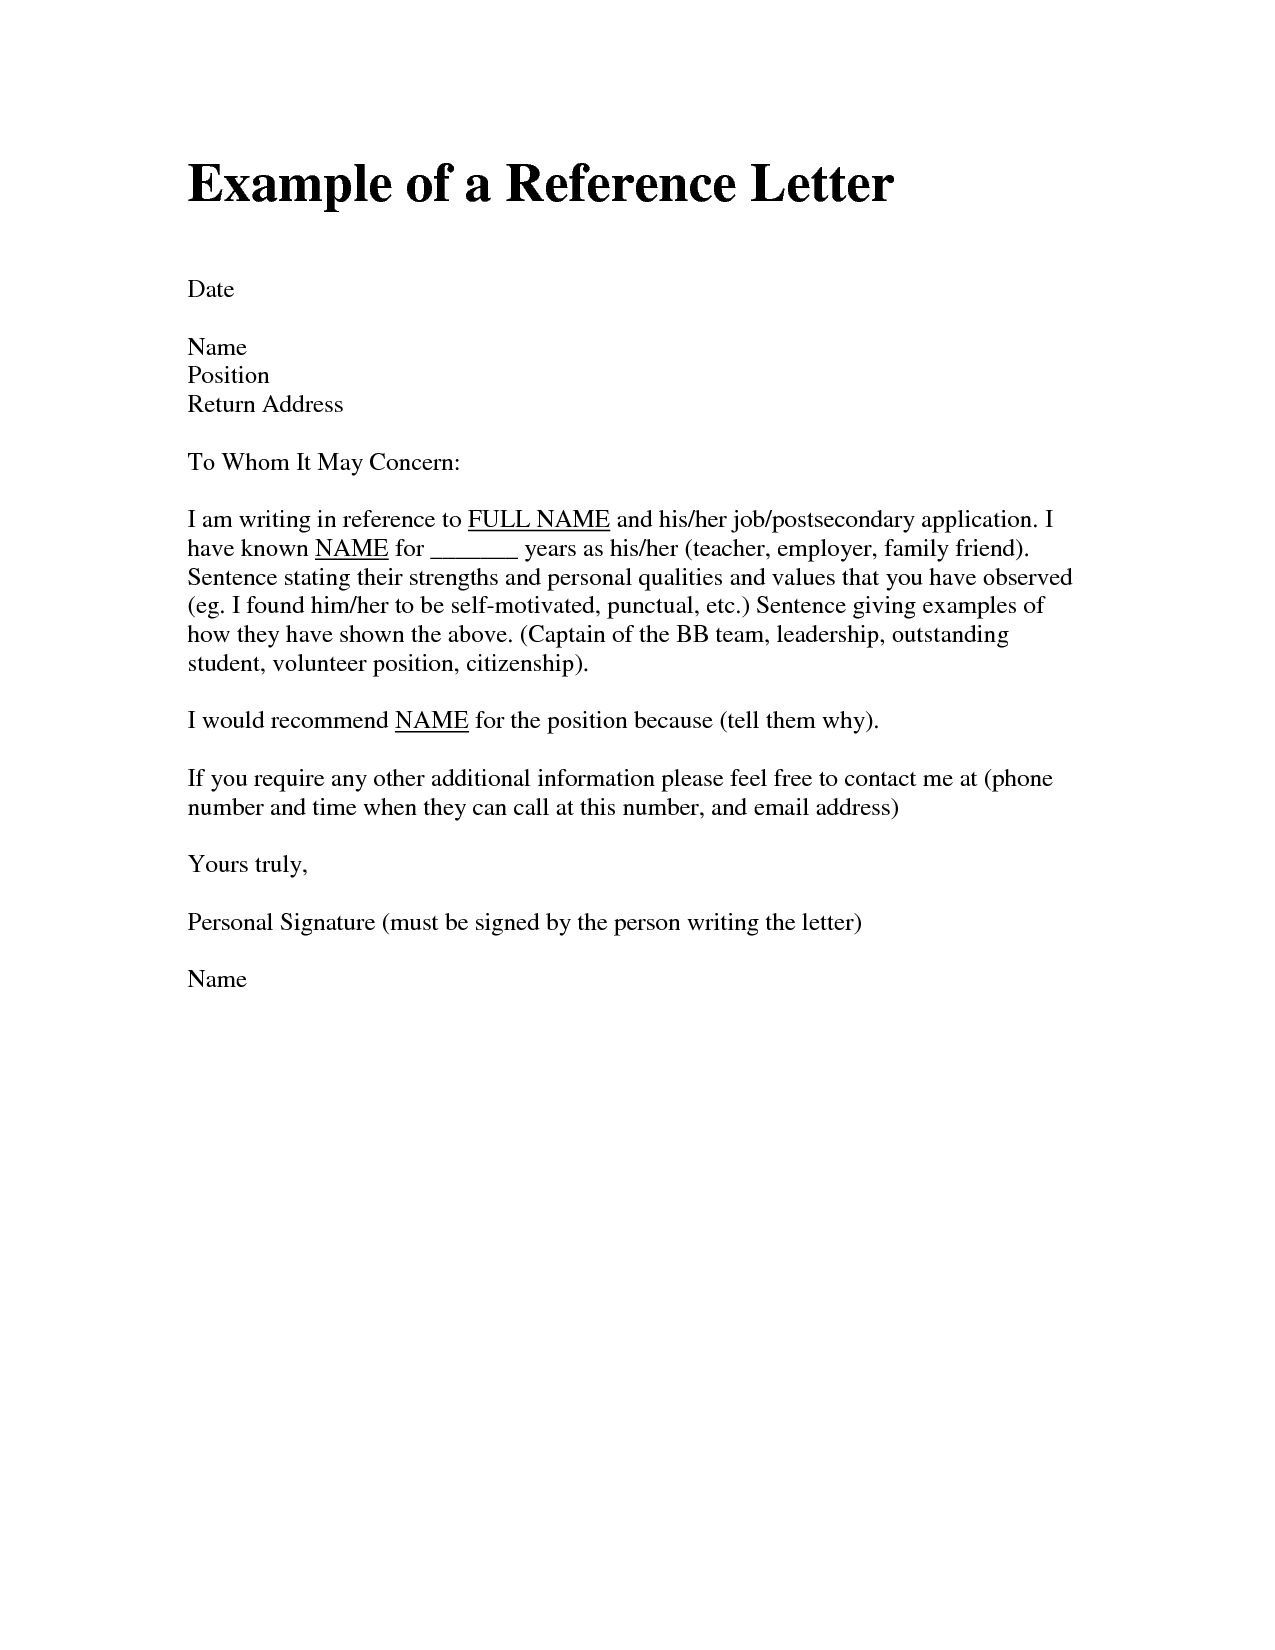 000 Stirring Letter Or Recommendation Template High Resolution  Of For Scholarship From Teacher Reference Employee AideFull